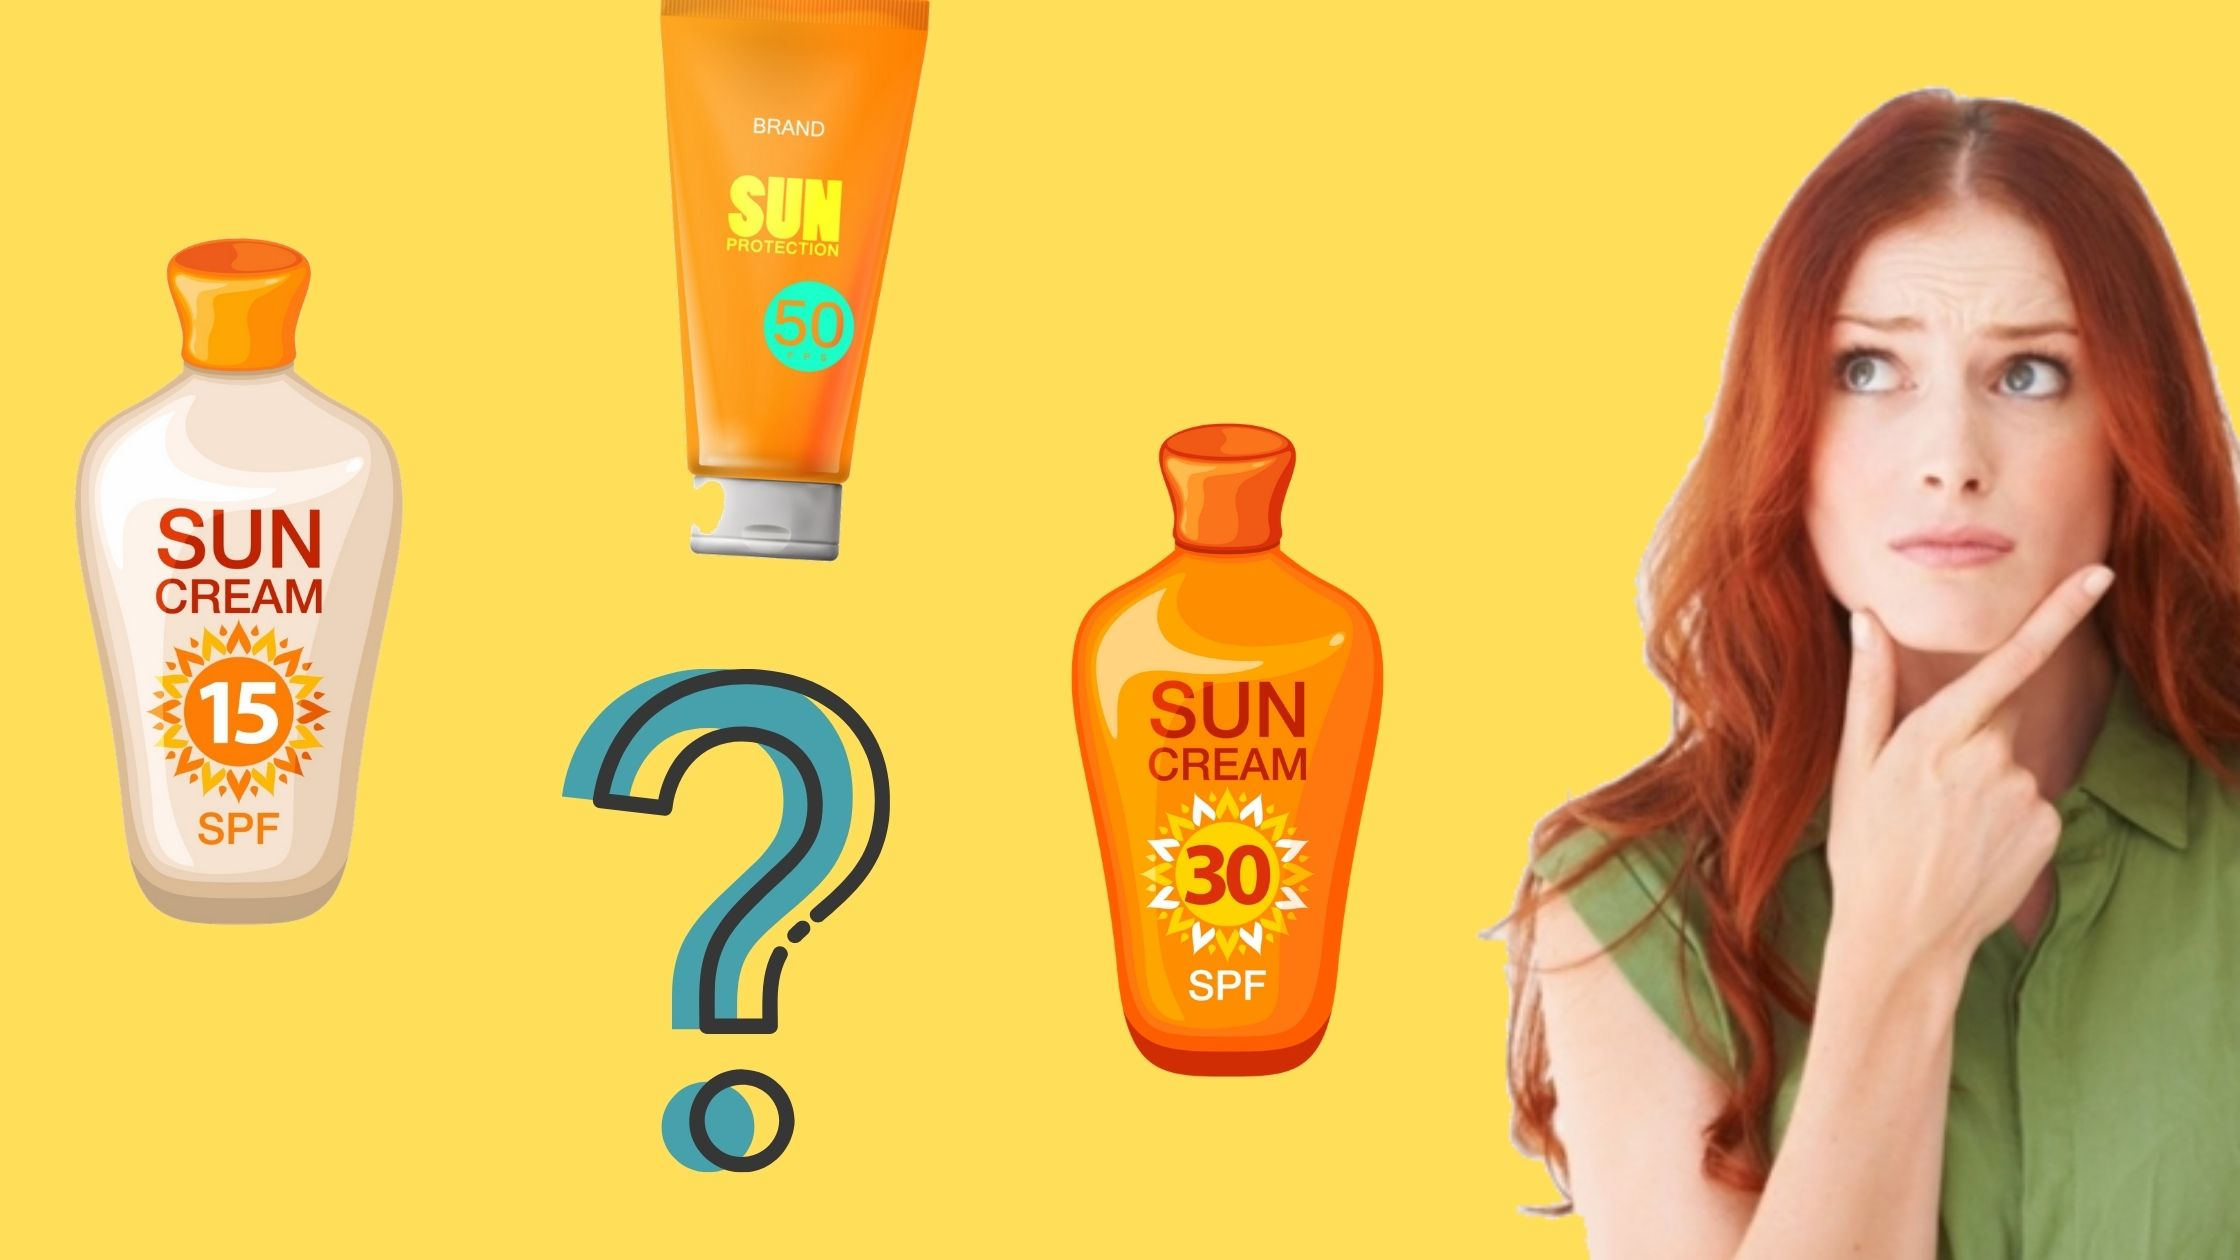 What SPF should I use?